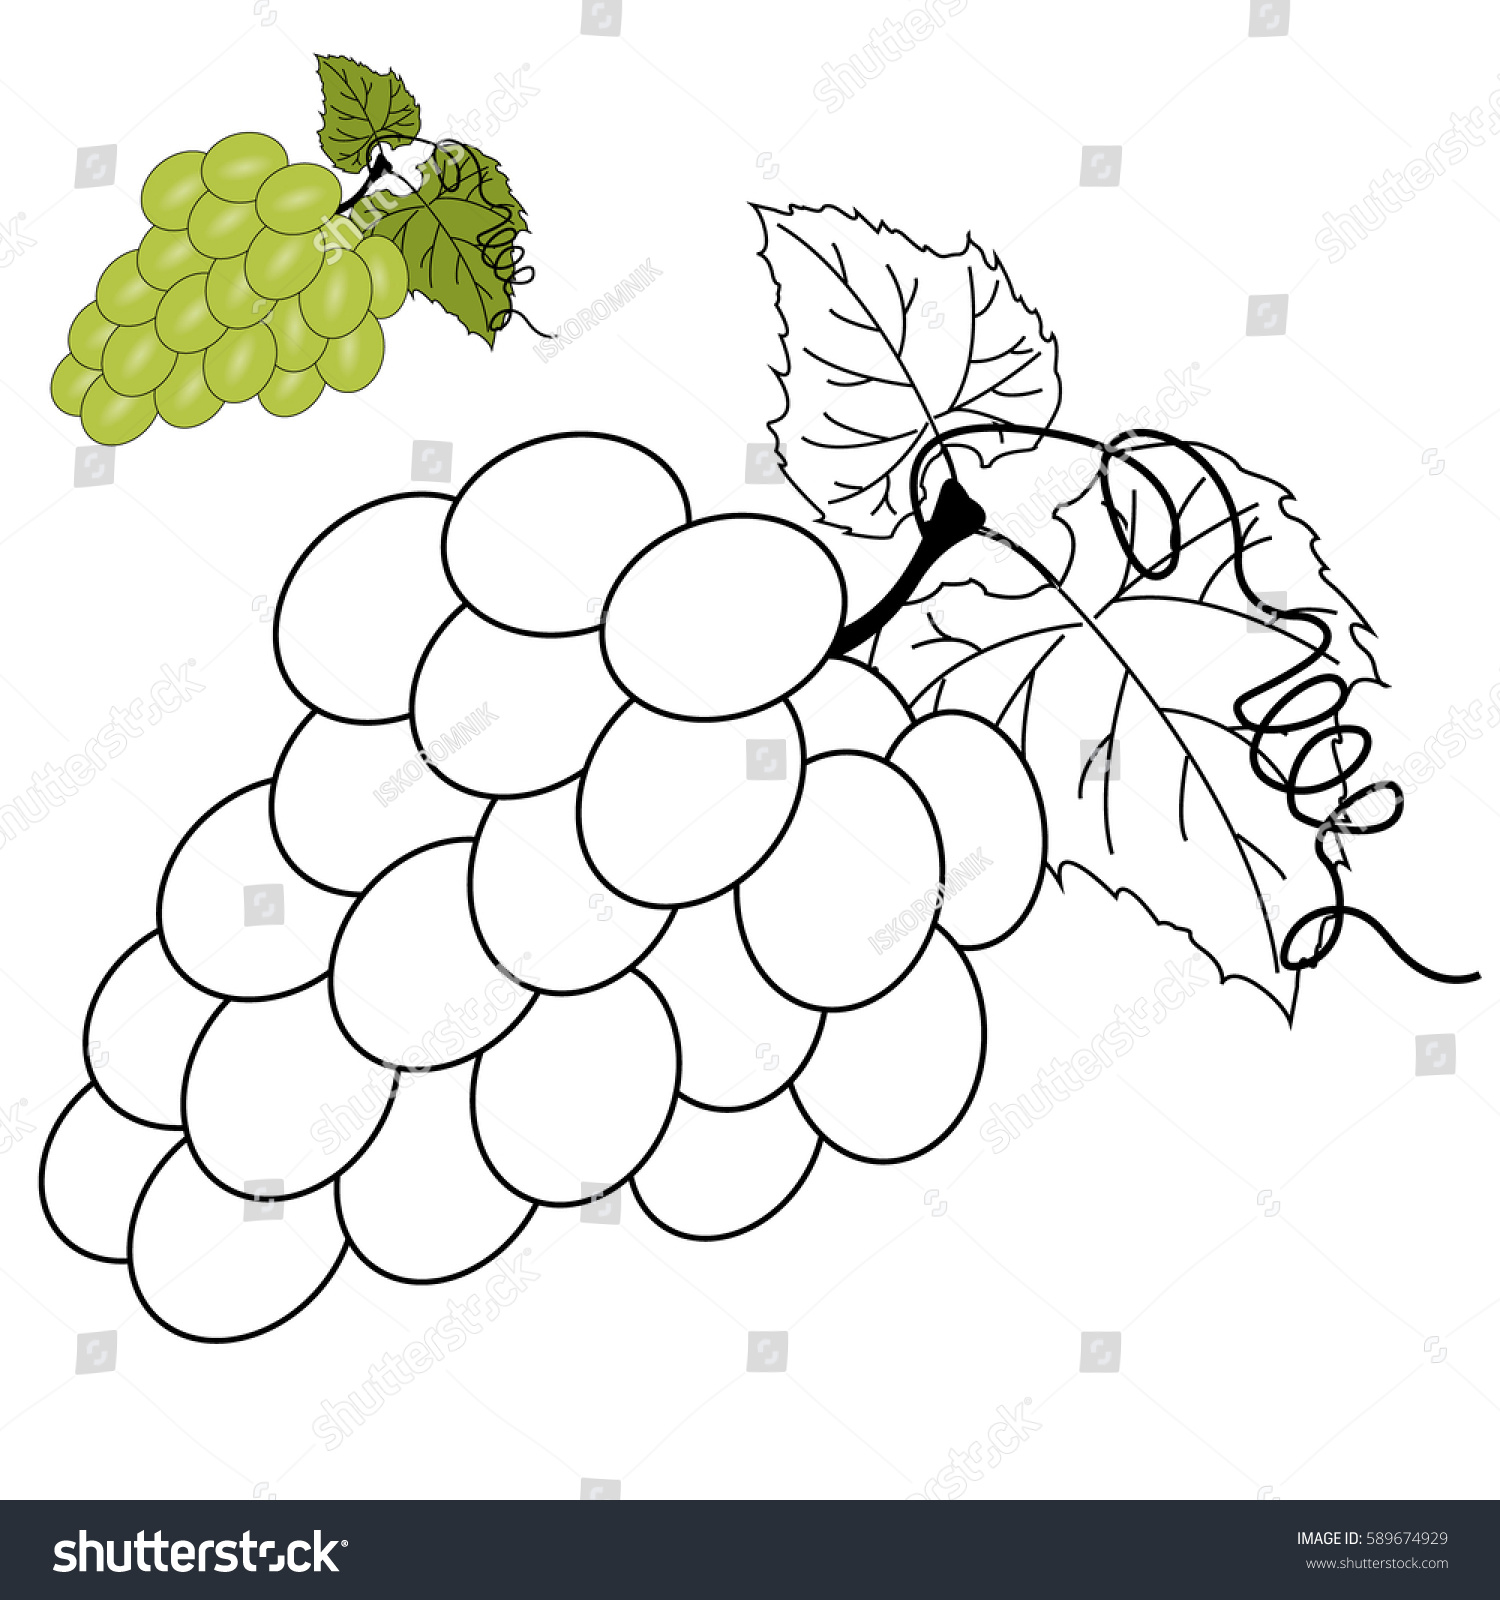 Vector Coloring Page Children Grapes Stock Vector 589674929 ...